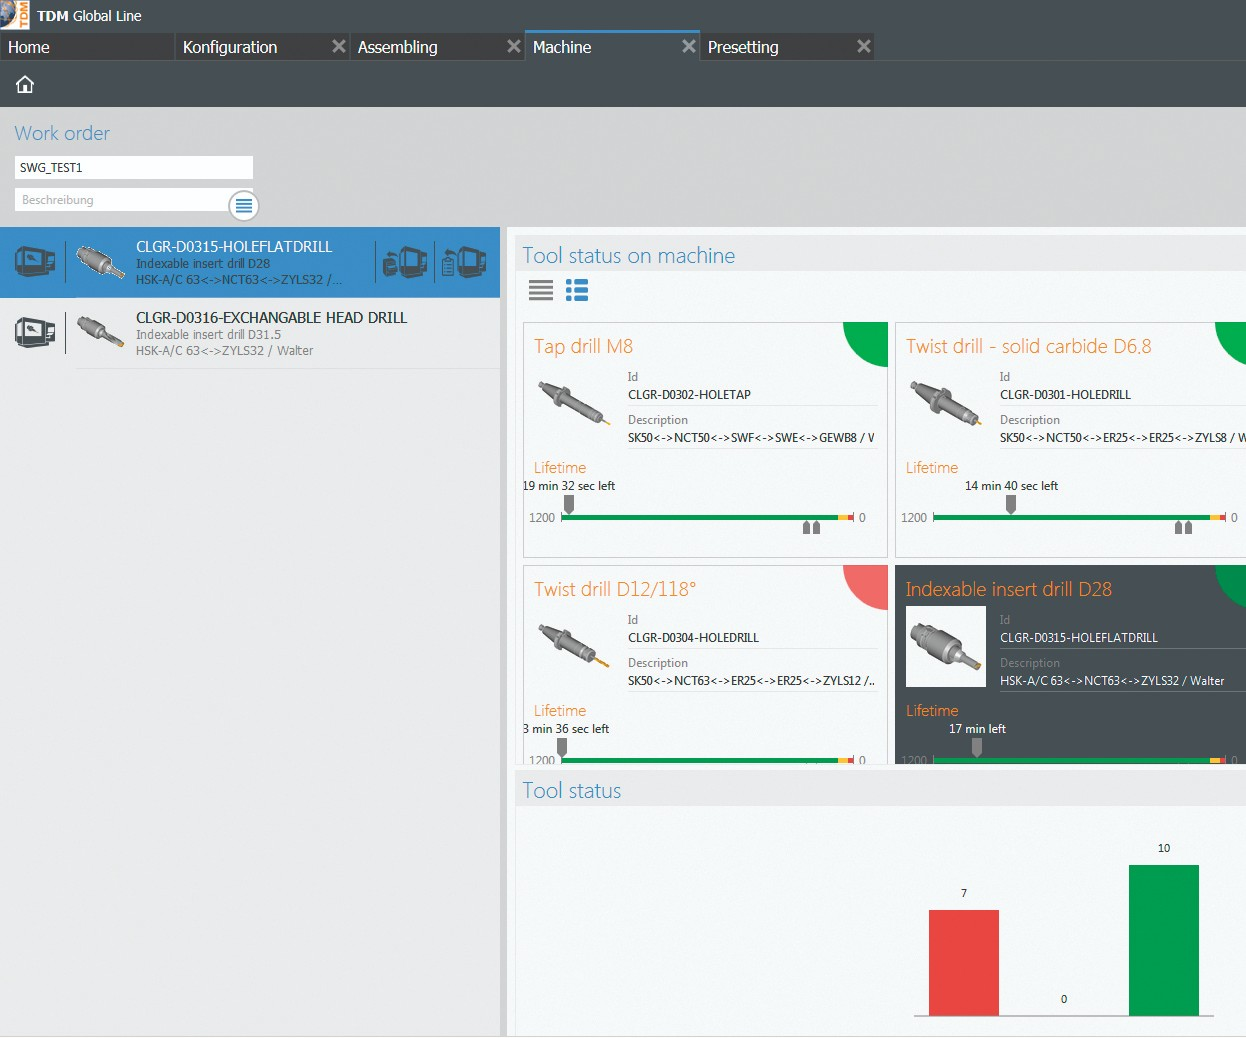 Screenshot of TDM Shopfloor Manager software